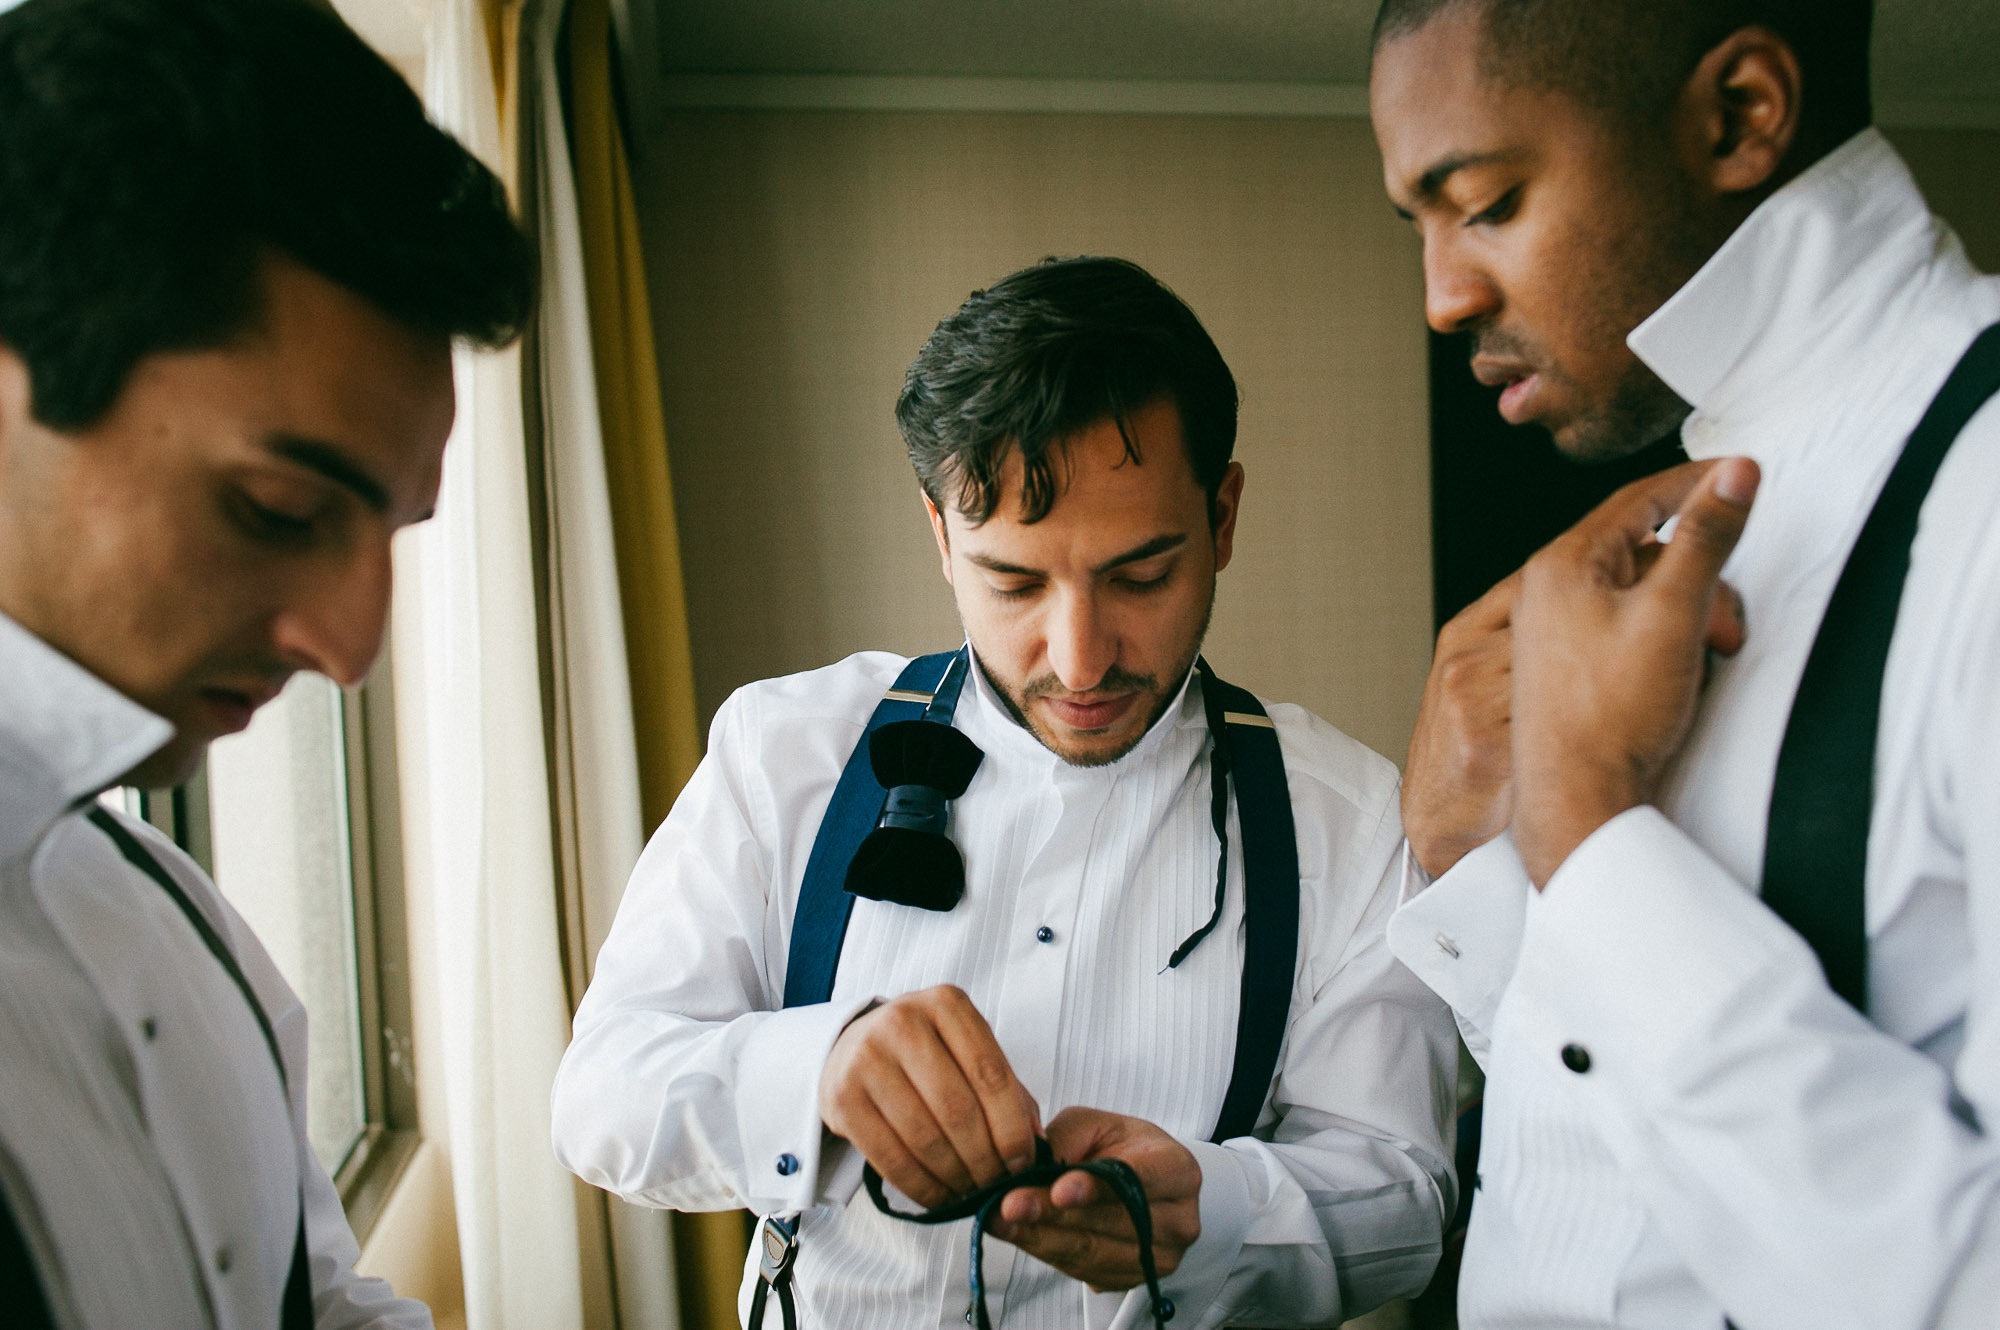 groomsmen-preparing-before-wedding